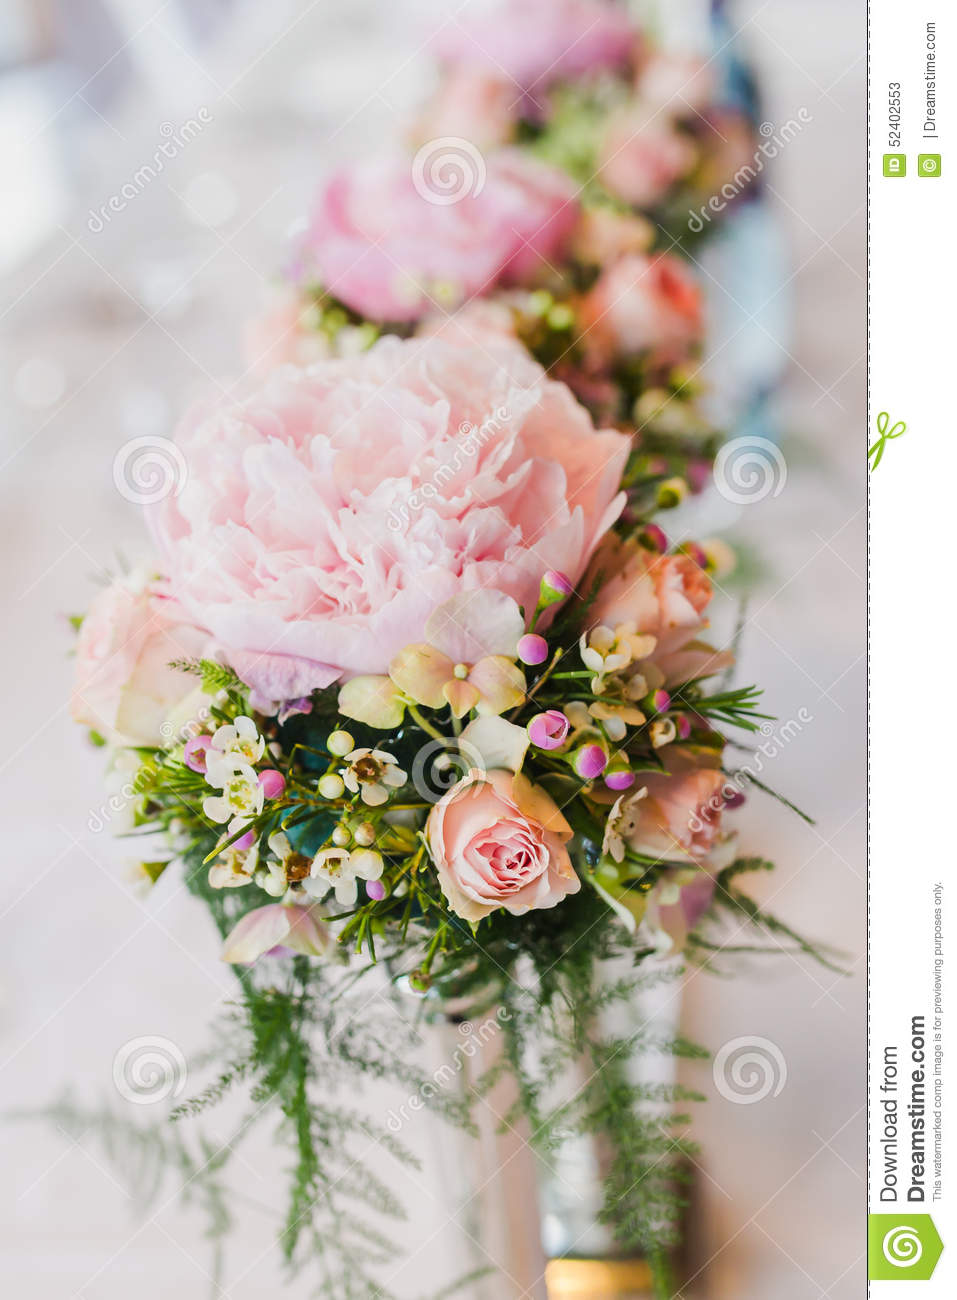 Luxurious flower of flowers on table stock photo image